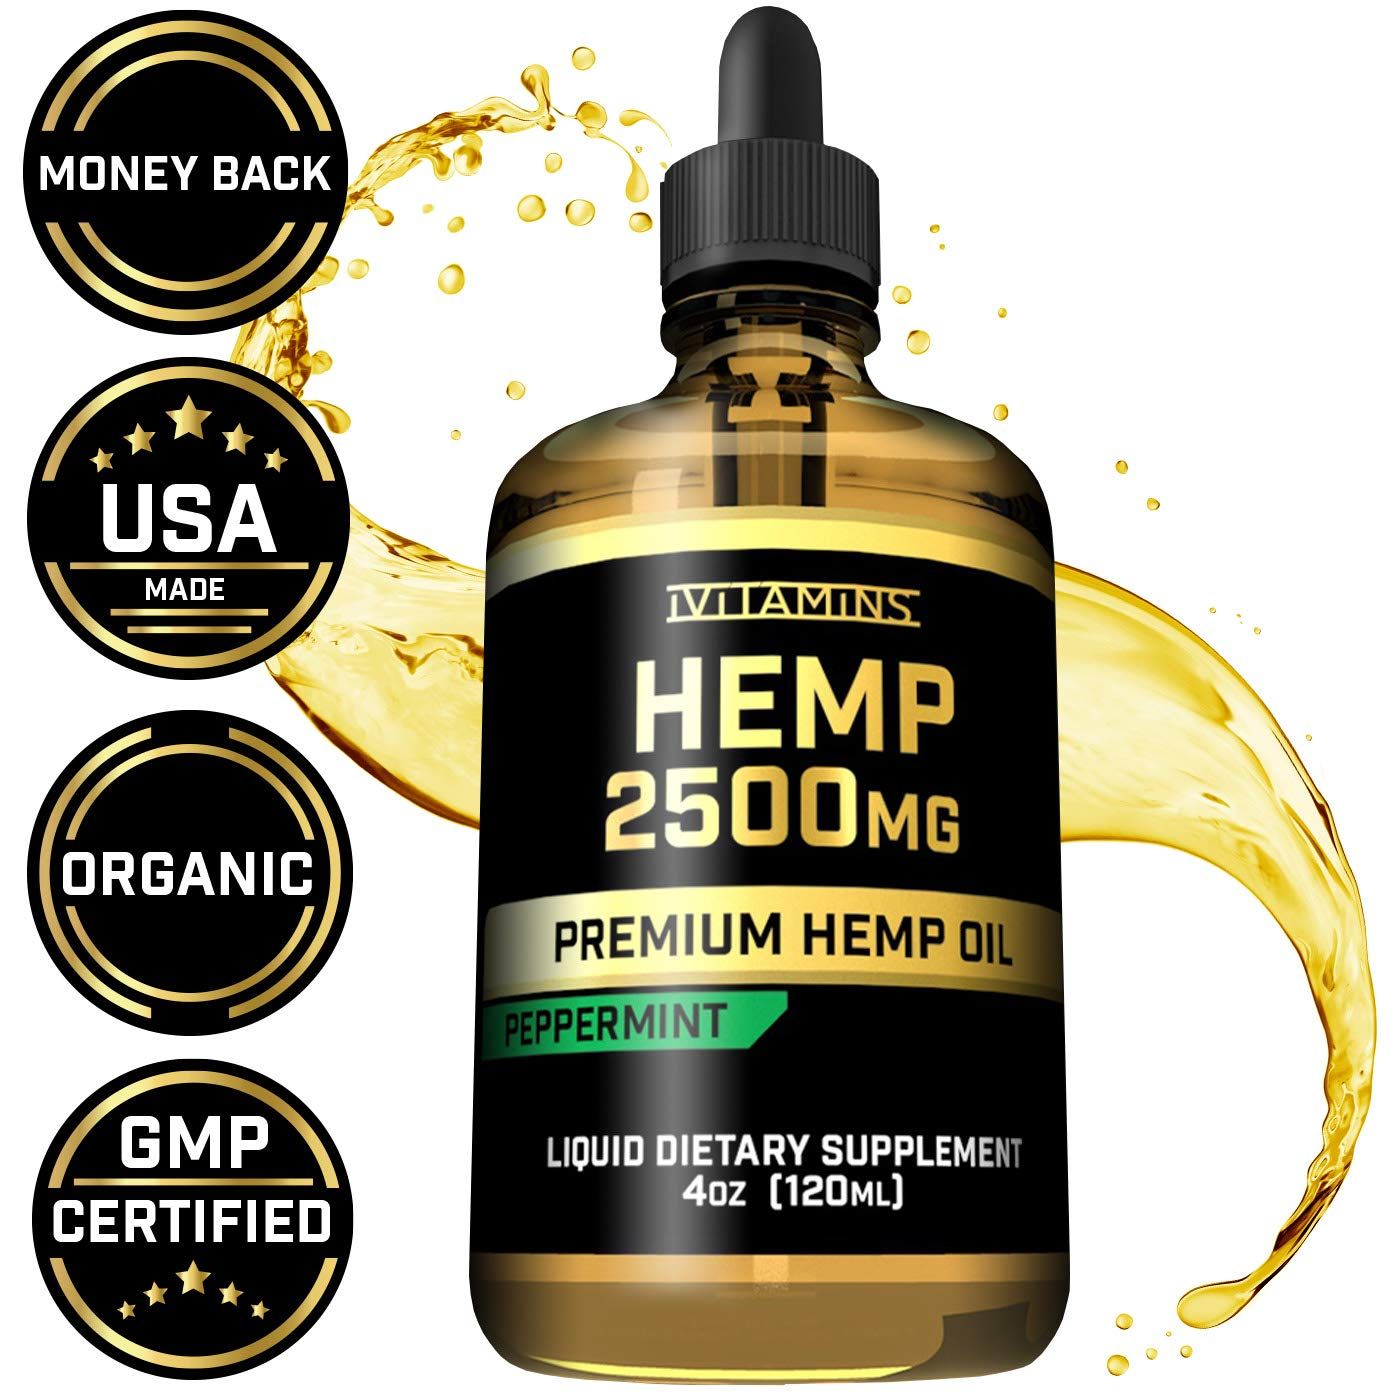 iVitamins Hemp Oil for Pain Anxiety Relief :: 2500mg 4oz :: May Help with Stress, Pain, Anxiety, Sleep, Depression, Headaches + More :: Hemp Seed Extract :: Rich in Omega 3,6,9 :: (Peppermint Flavor)